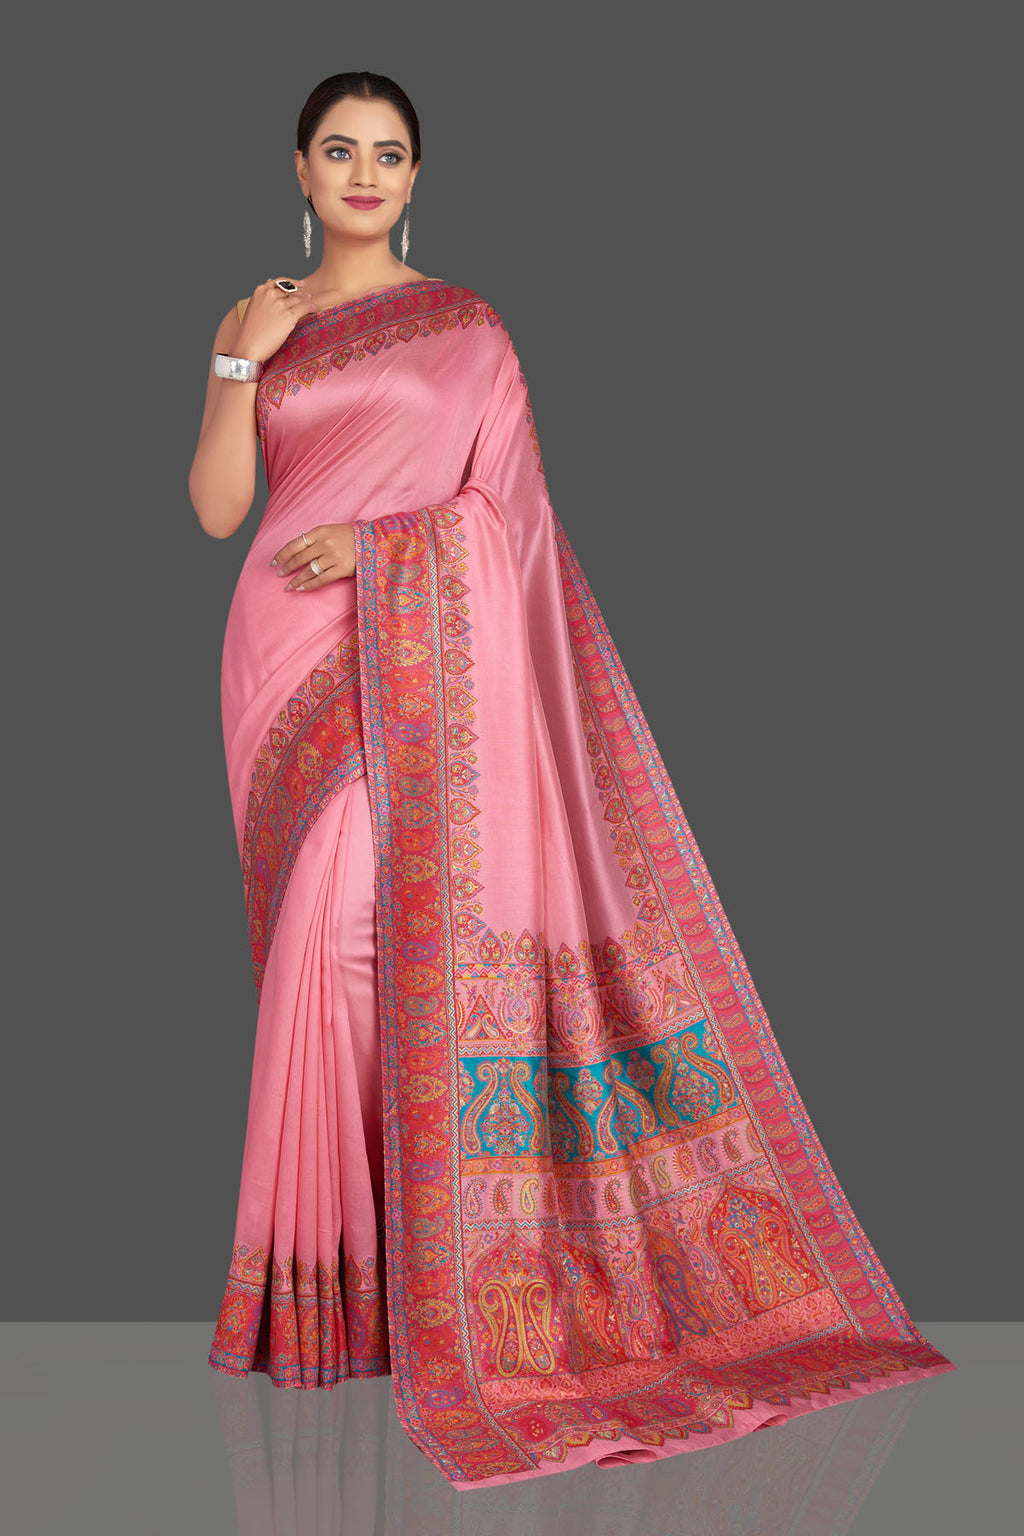 Shop stunning light pink Kani weave tussar muga saree online in USA. Shop designer sarees, printed sarees, embroidered sarees, crepe sarees in USA from Pure Elegance Indian fashion store in USA.-full view